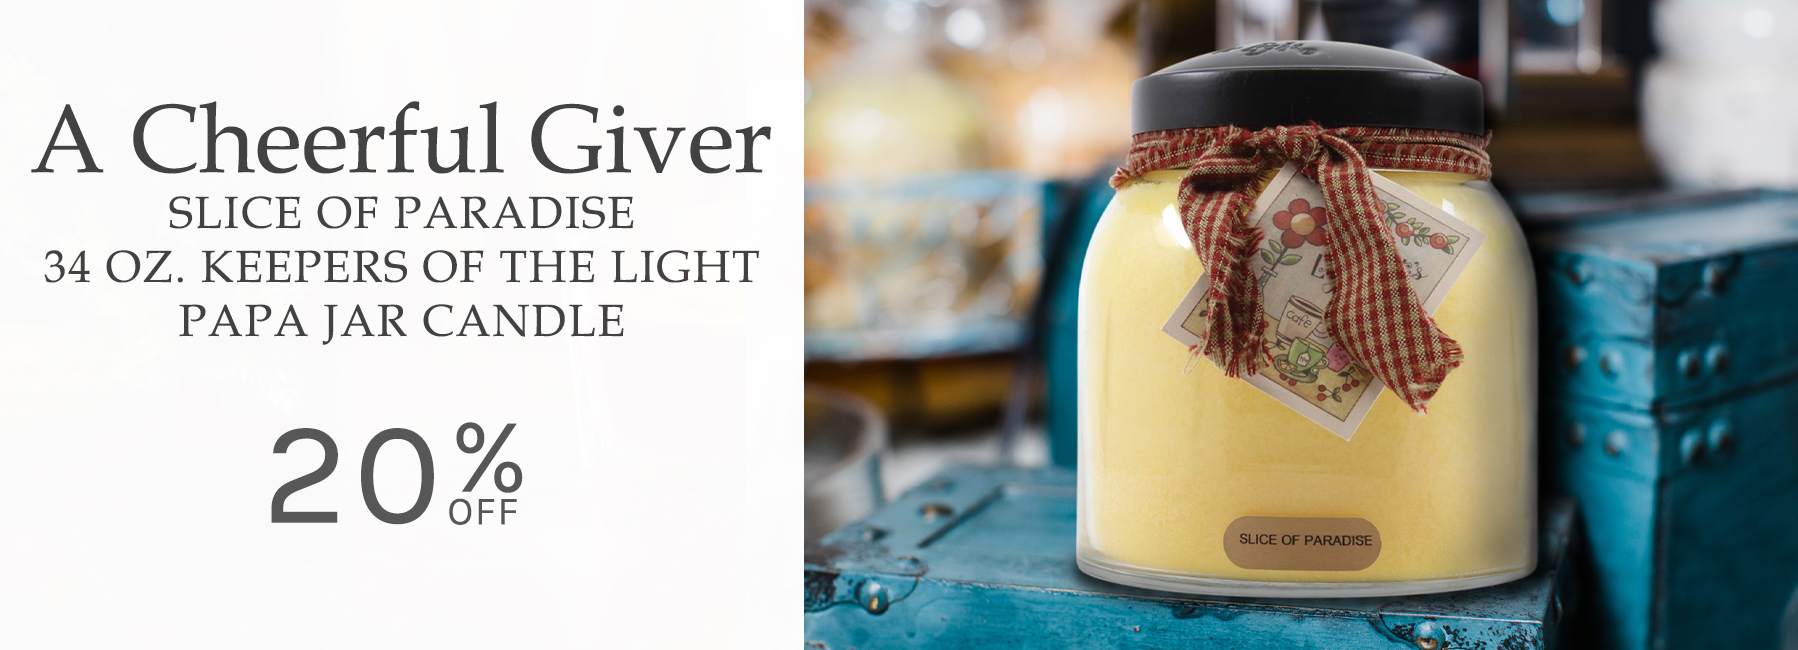 A Cheerful Giver - Slice of Paradise 34 Ounce Keepers of the Light Papa Jar Candles - 20 Percent OFF